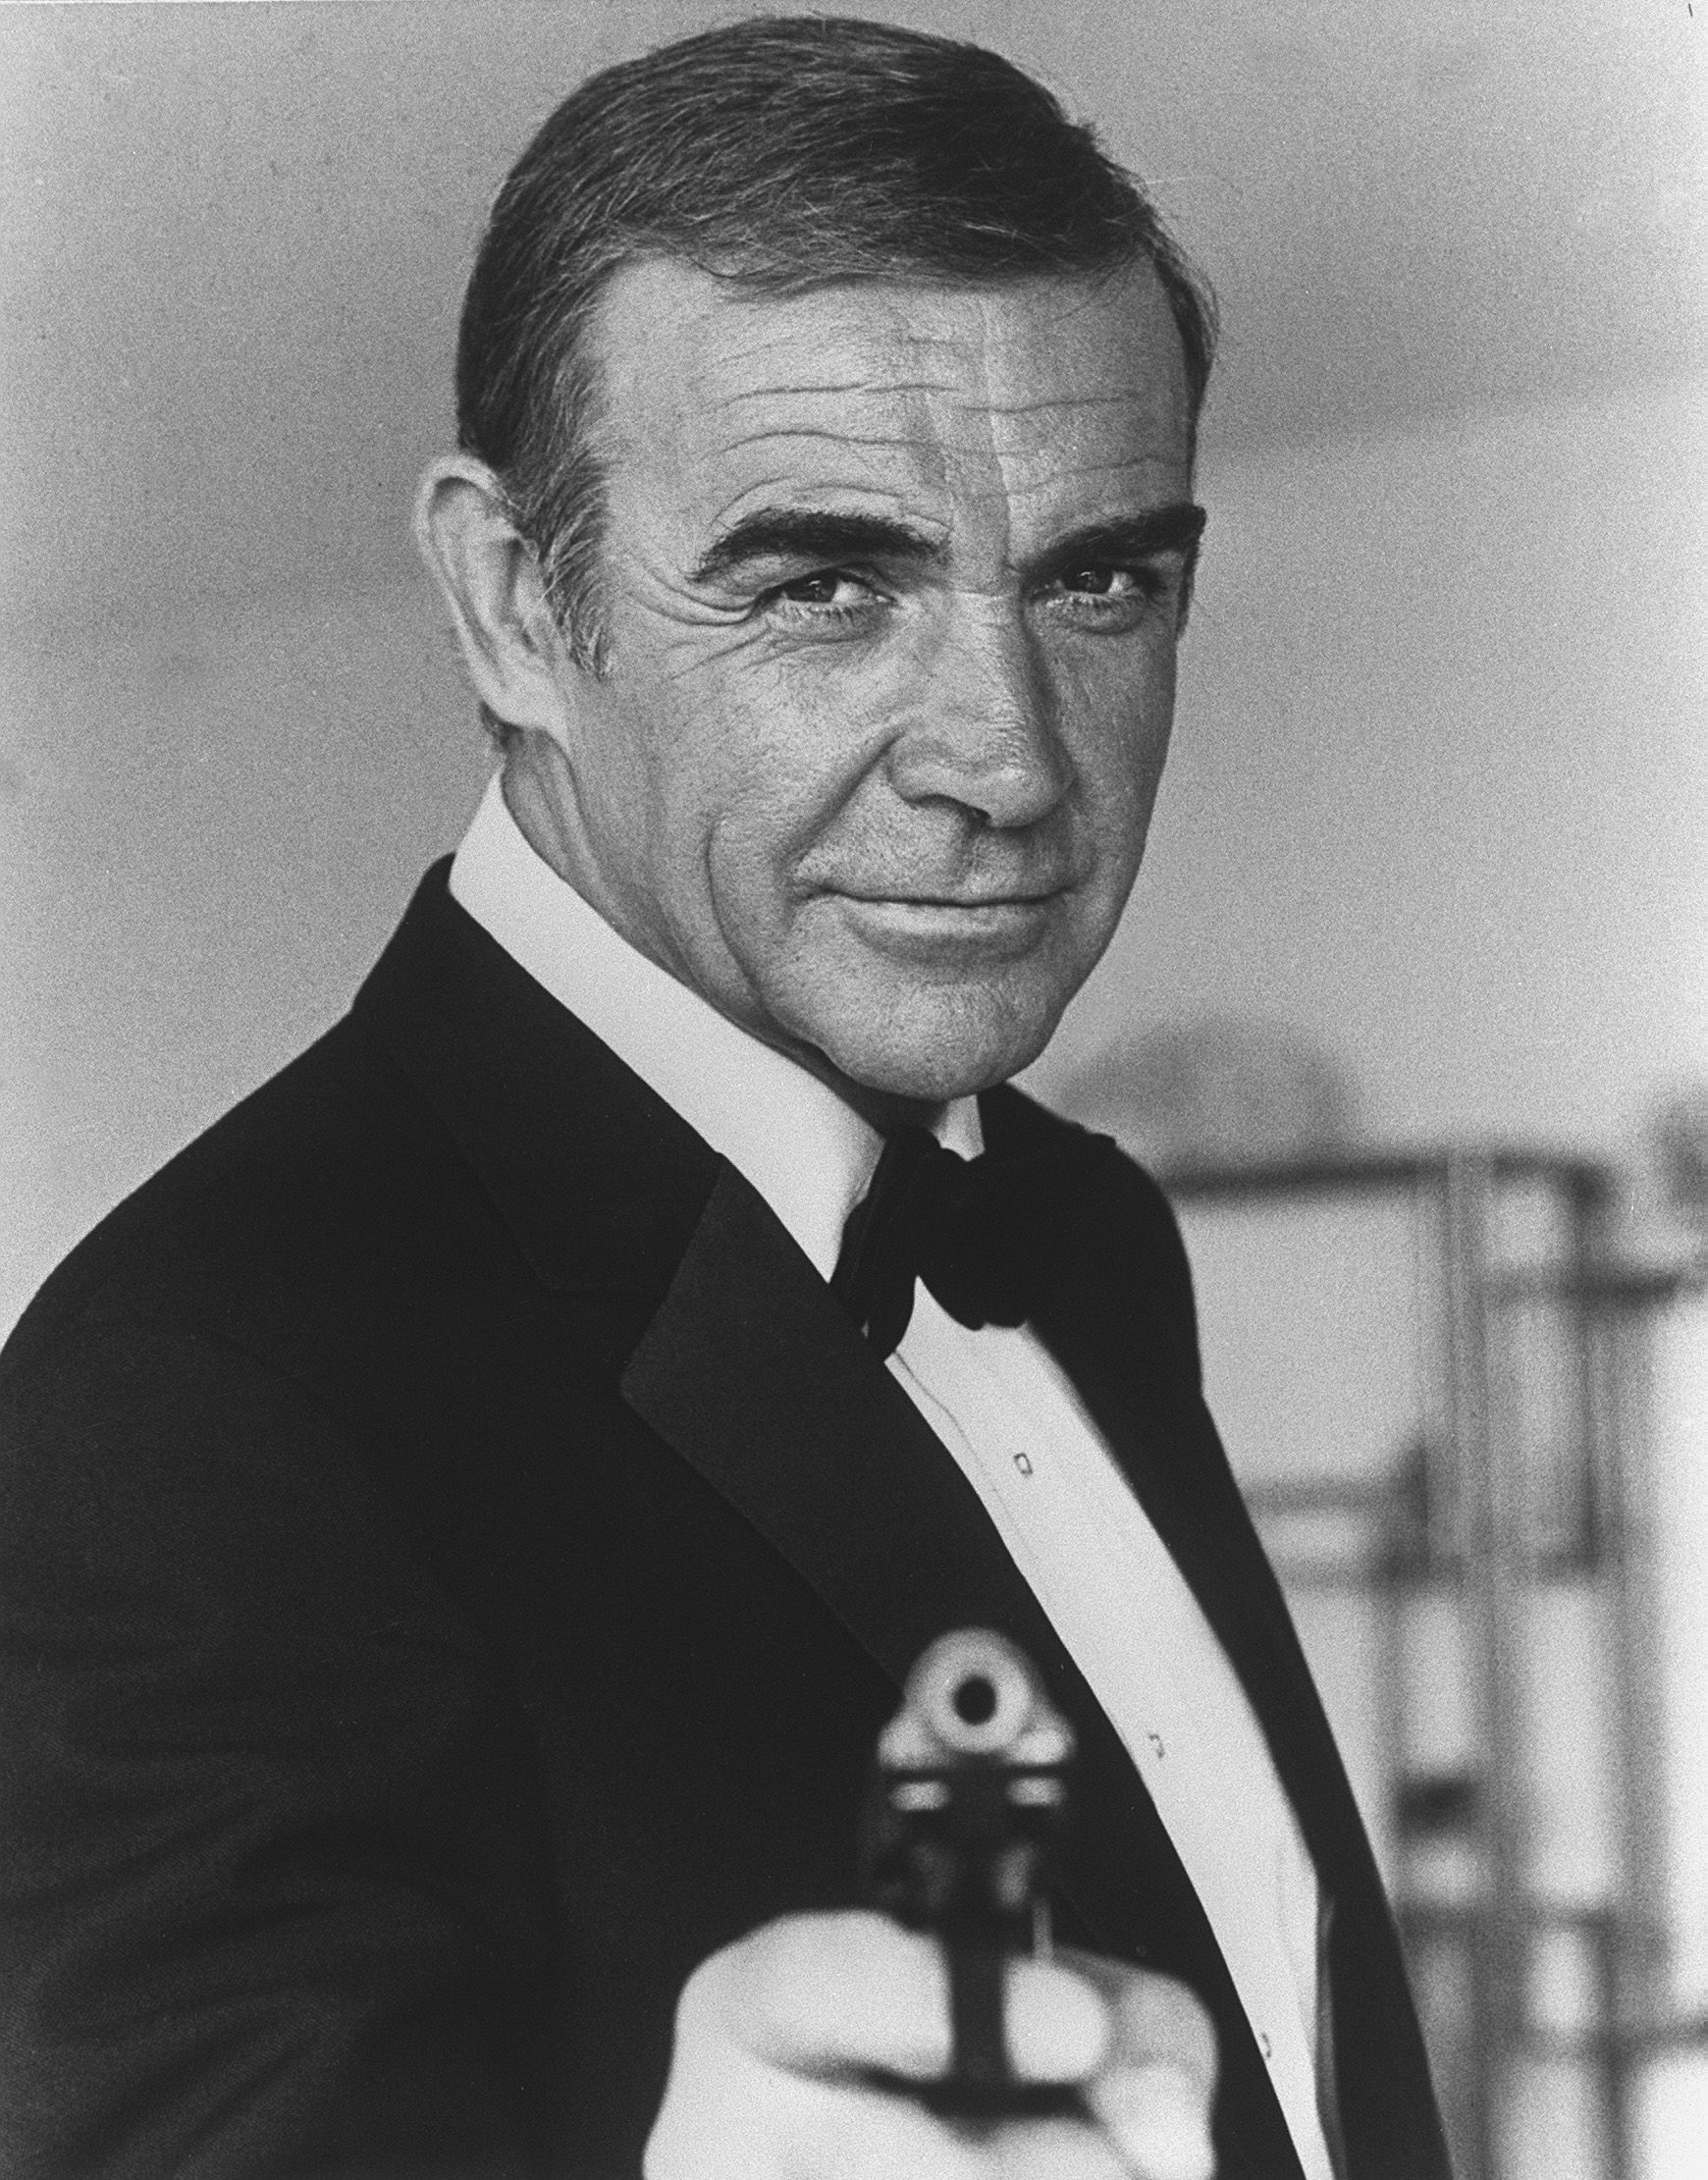 Sean Connery photo 5 of 67 pics, wallpapers